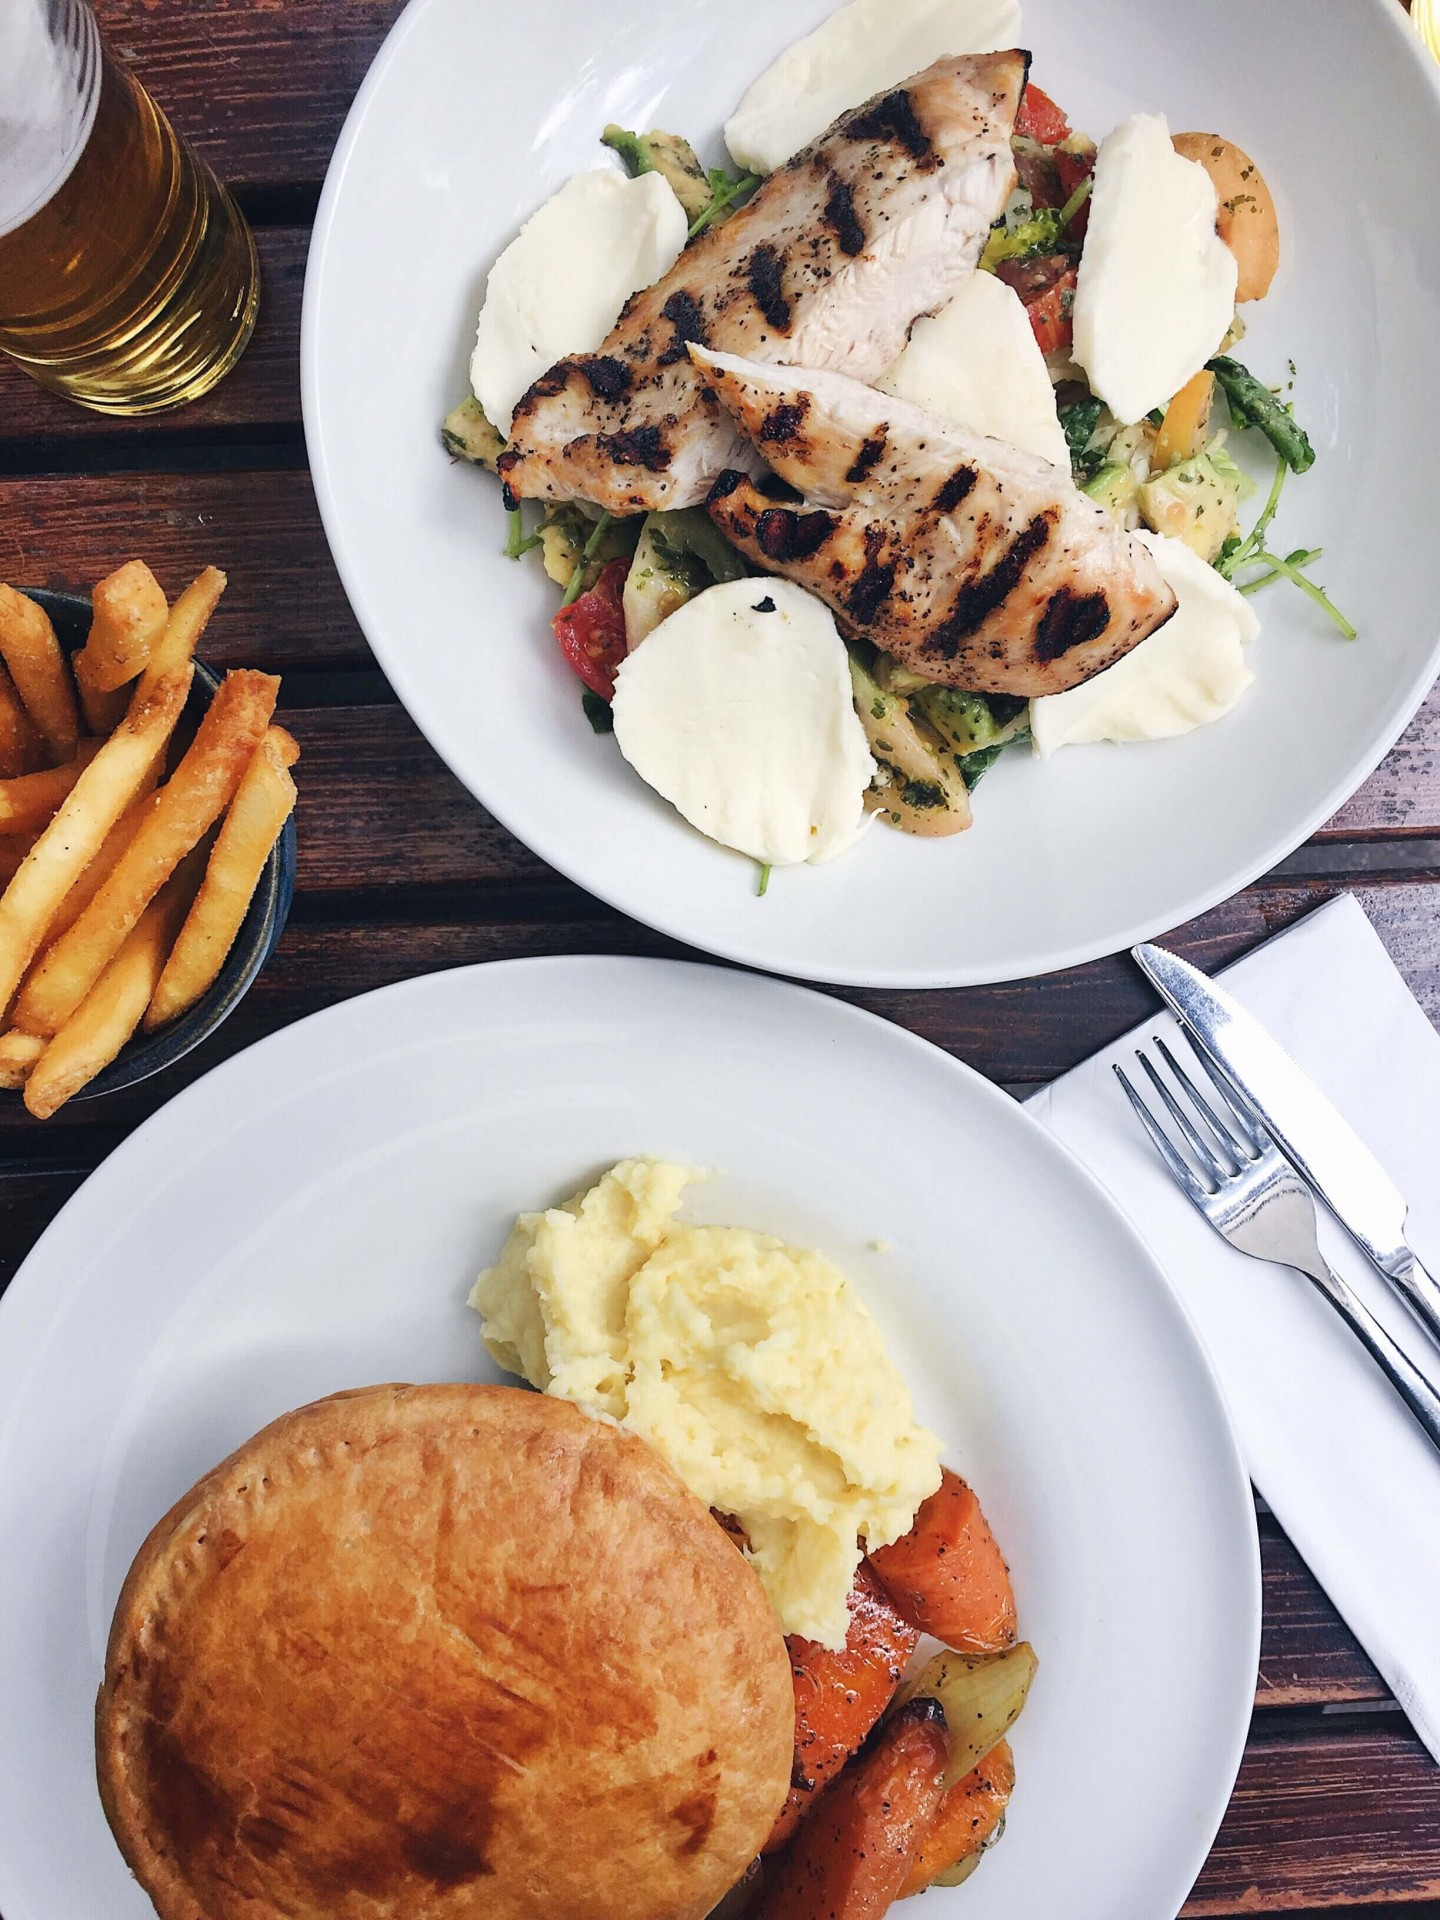 A delicious lunch at The Spaniards Inn pub on Hampstead Heath. The perfect spot for lunch after a walk!